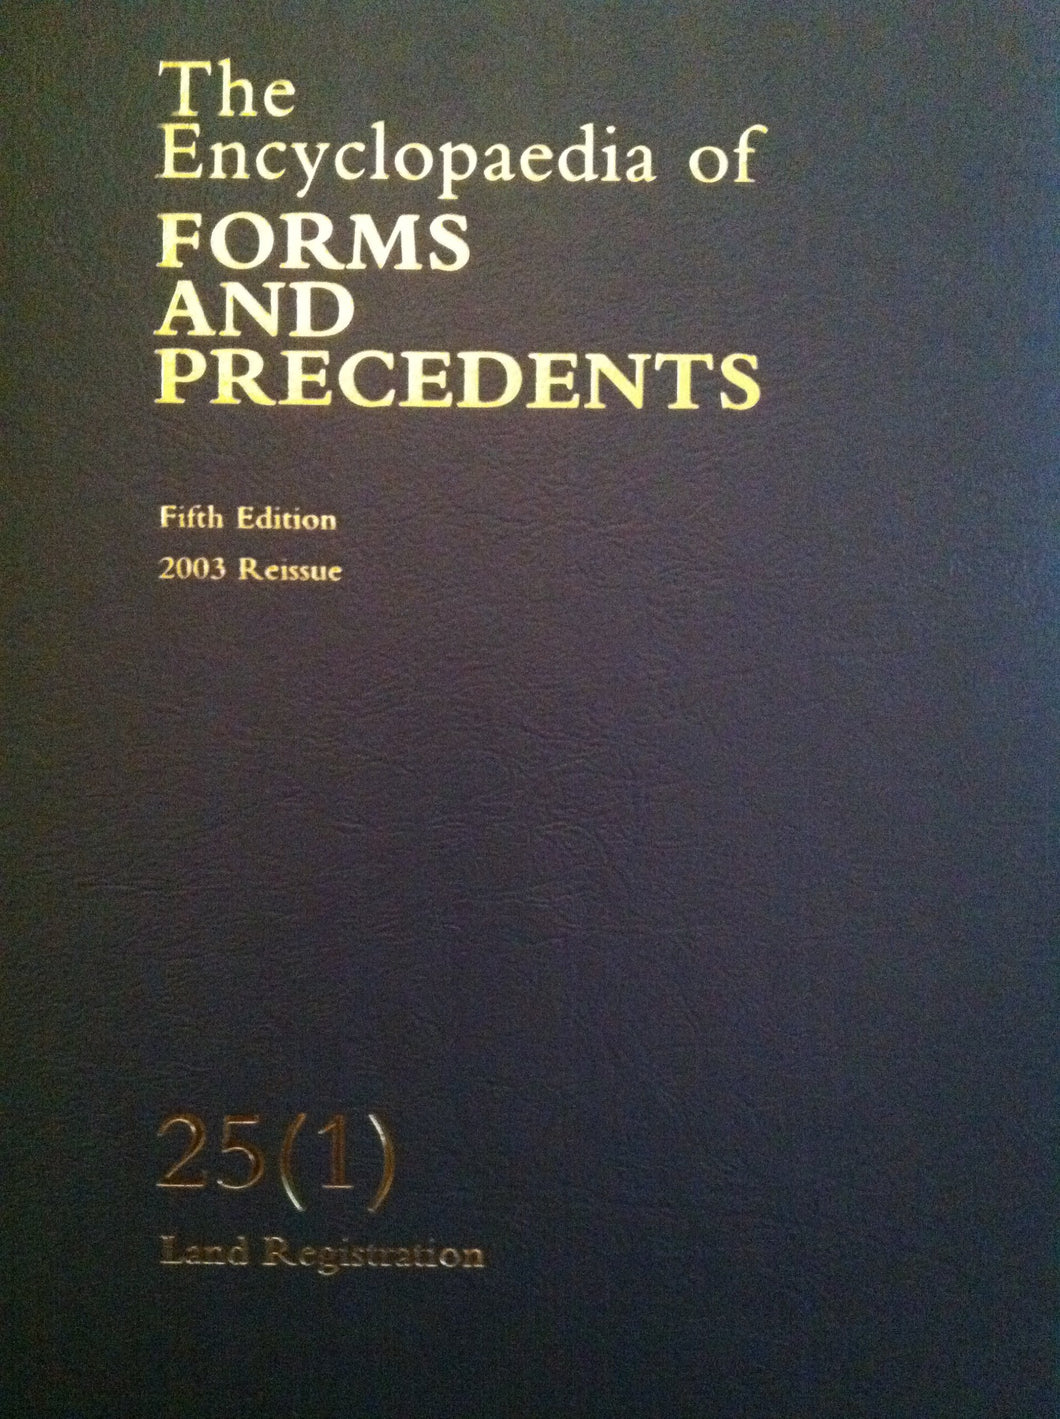 The Encyclopedia Of FORMS AND PRECEDENTS. Fifth Edition. 2003 Reissue. 25(1). Land Registration.